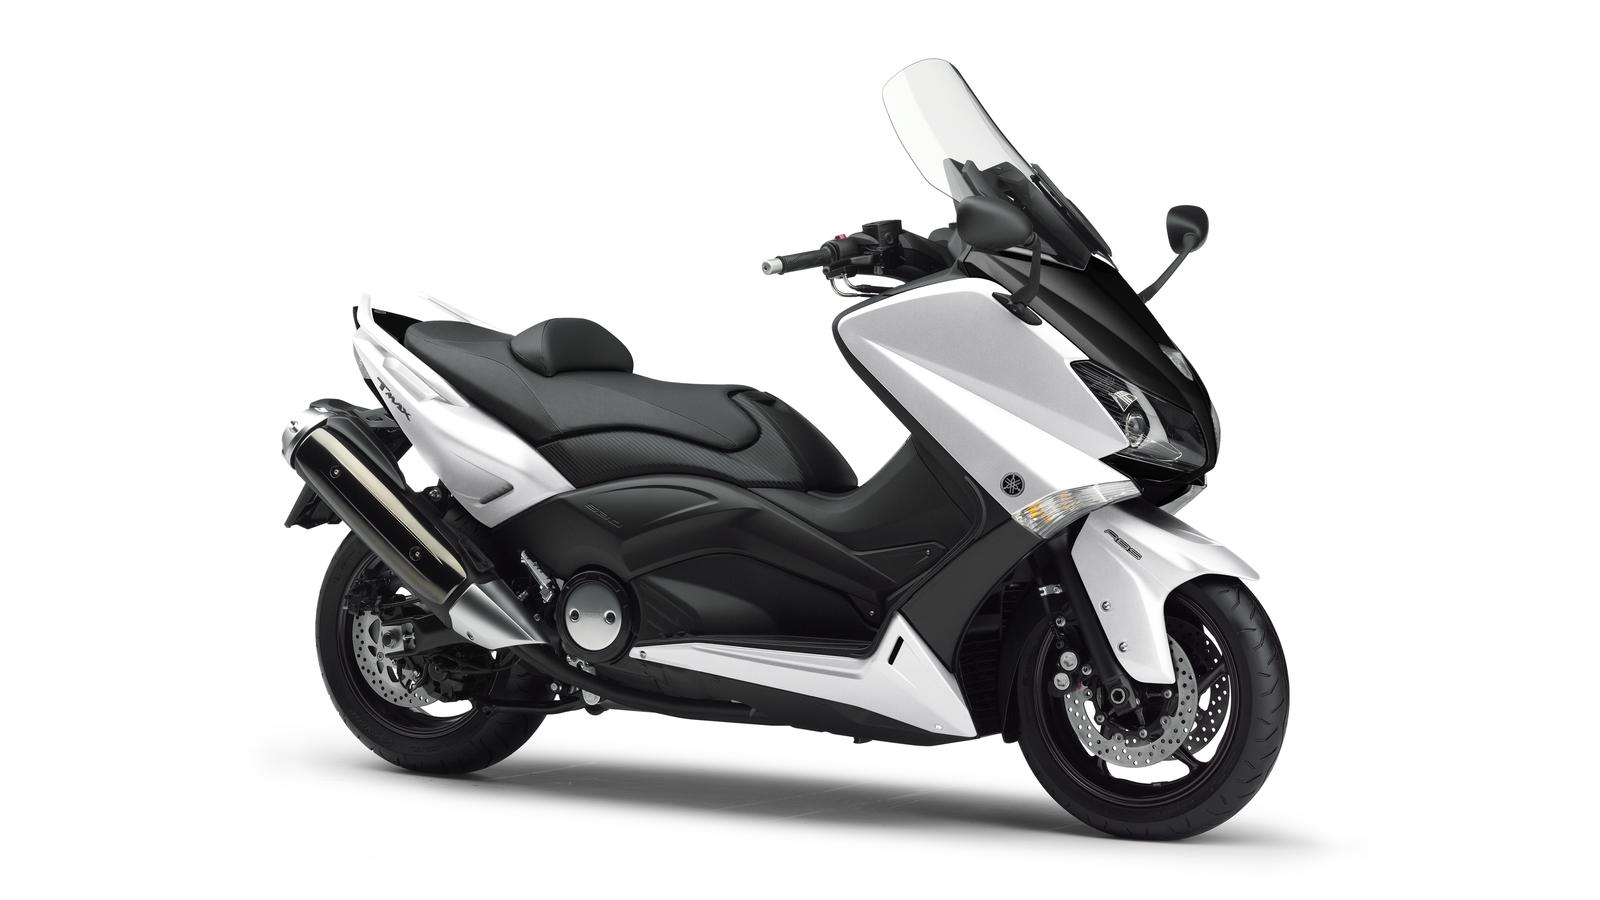 Yamaha tmax photo - 1